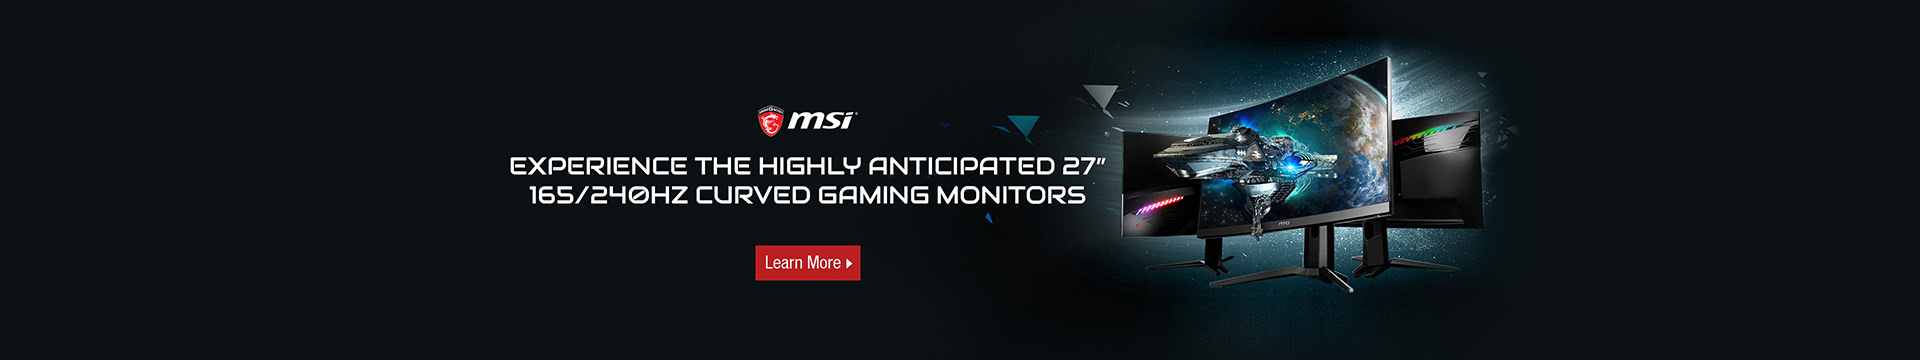 Experience the highly anticipated 27'' curved gaming monitors